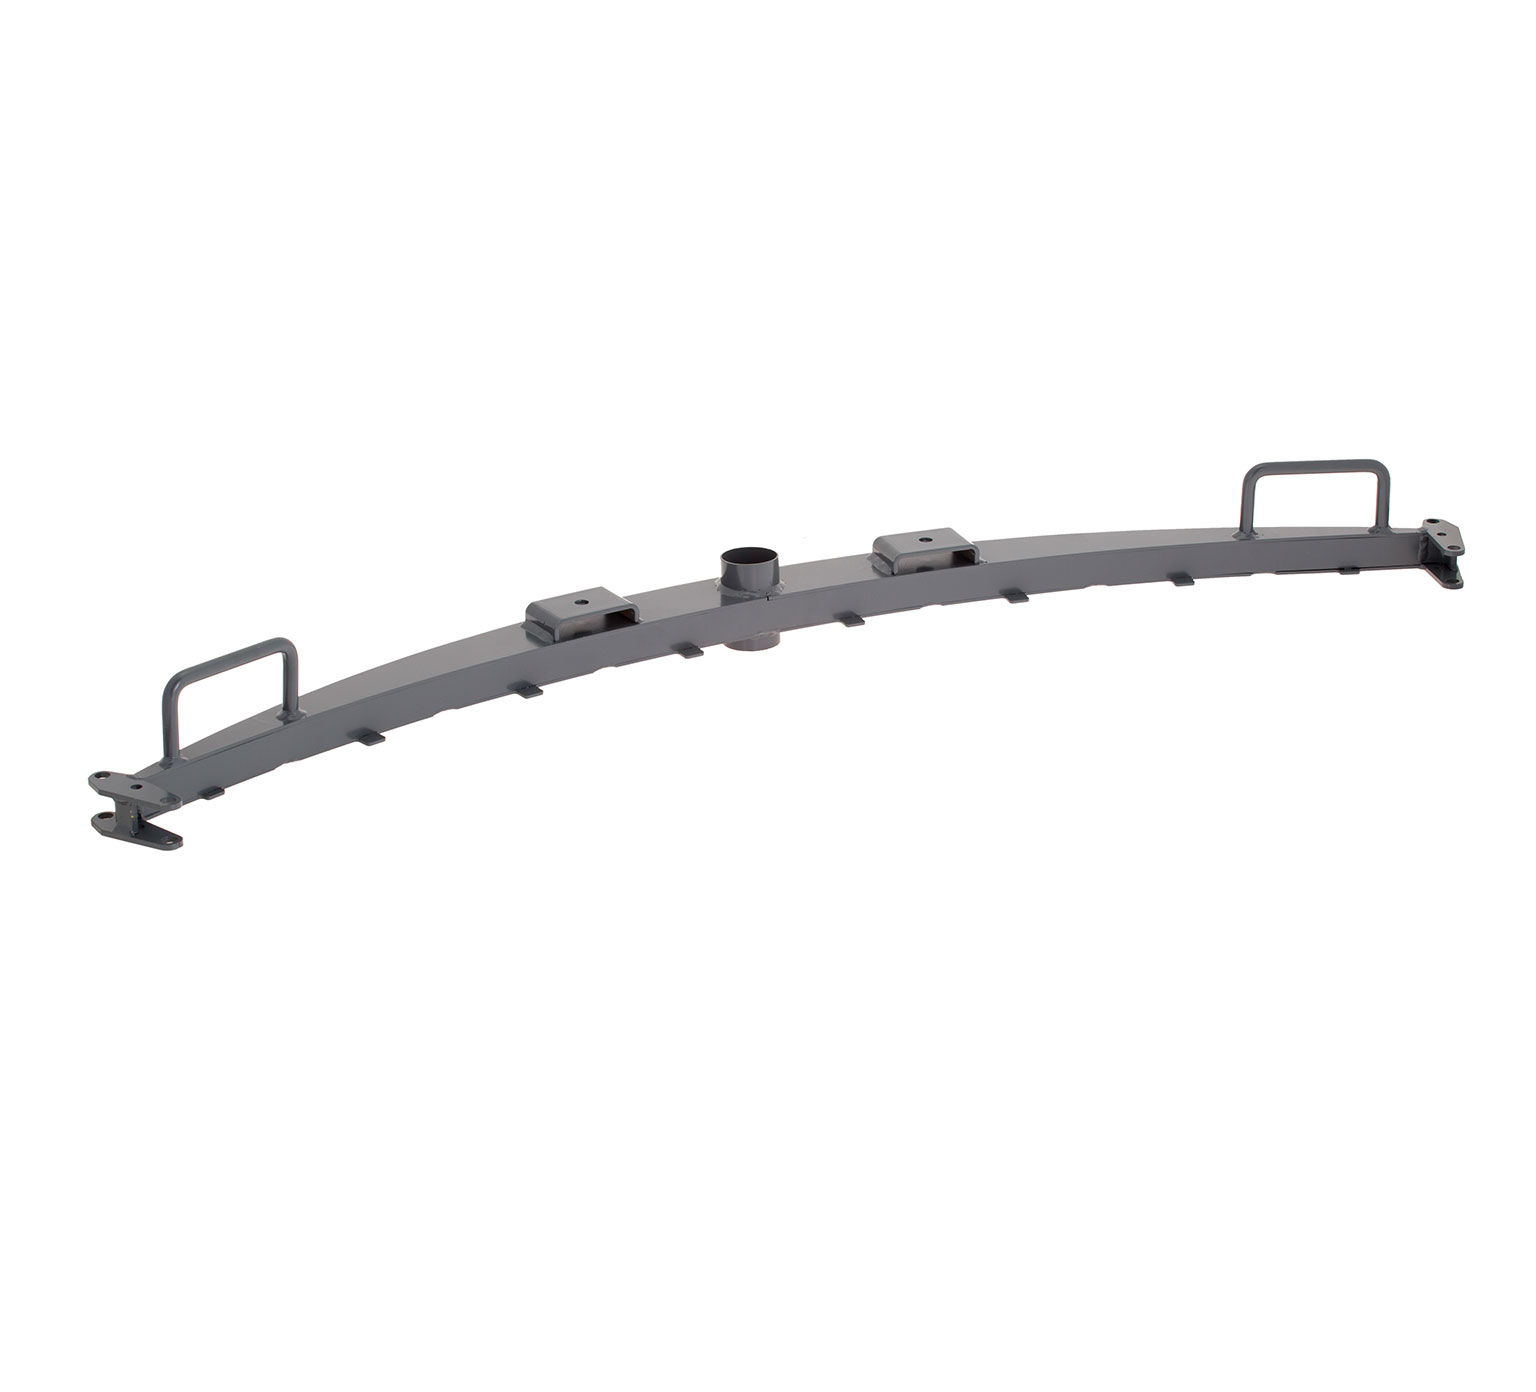 1056856 Squeegee Frame Weldment - 49.52 in alt 1